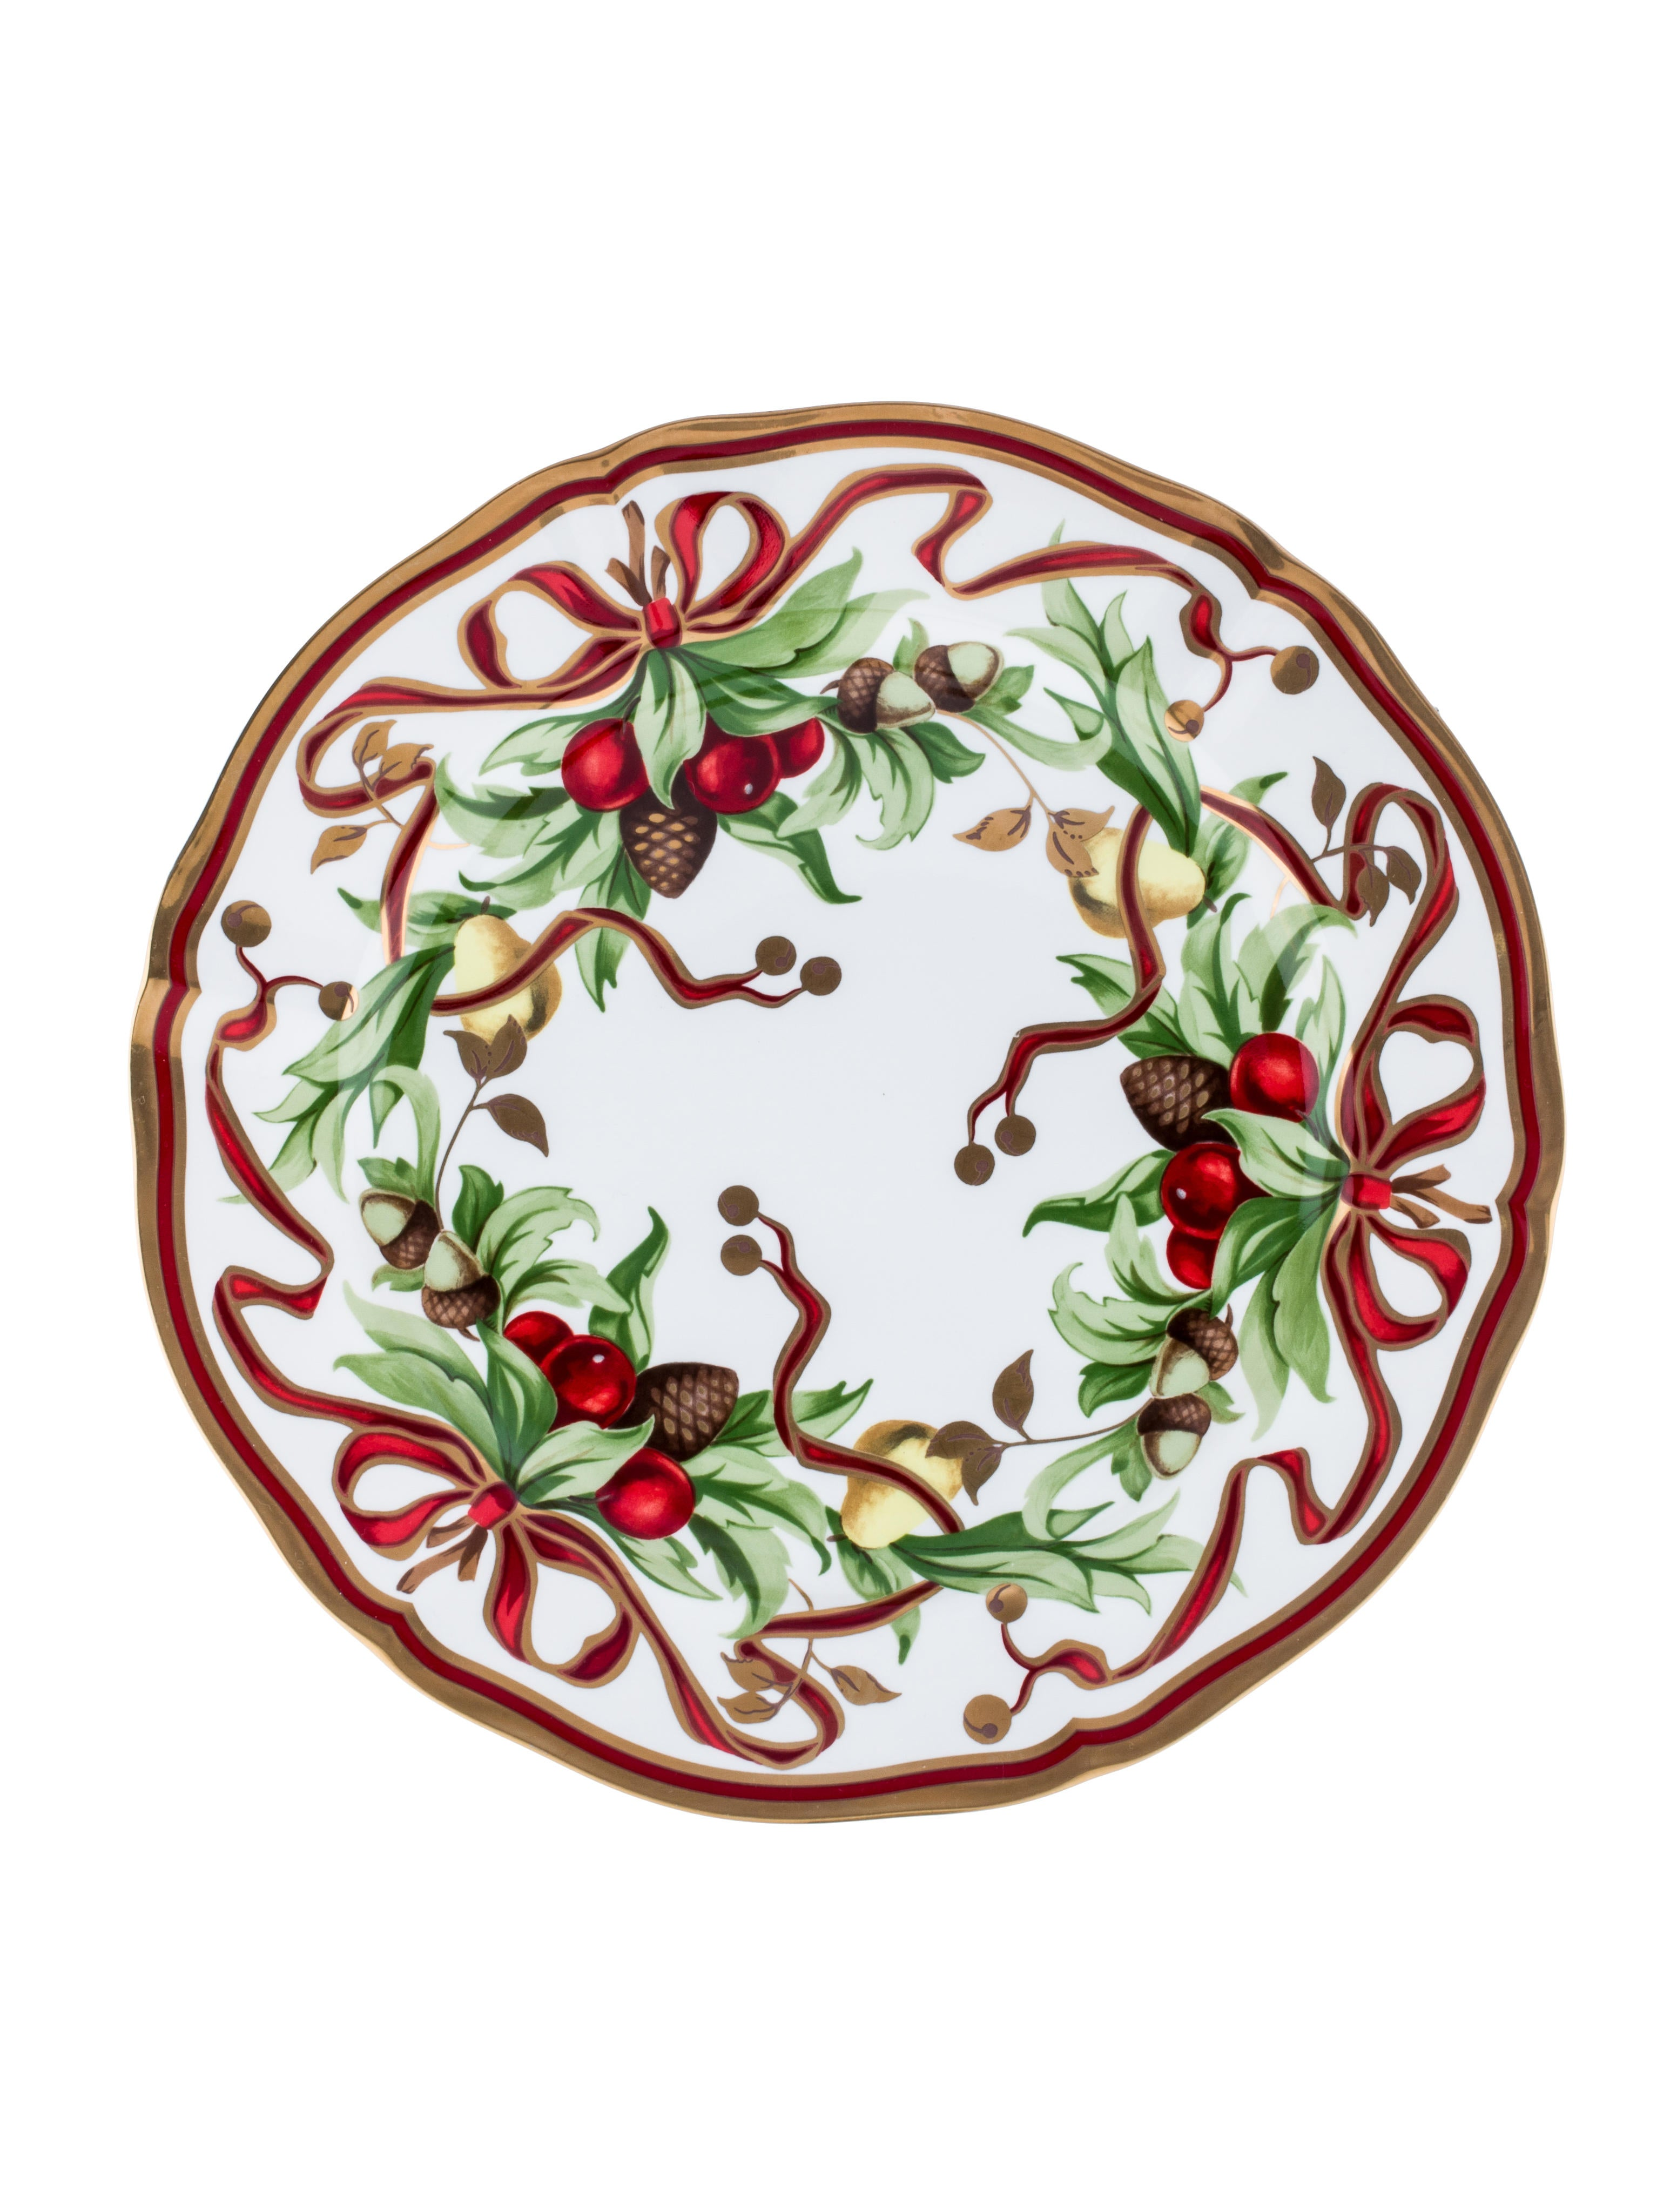 Tiffany Holiday Dinner Plates  sc 1 st  The RealReal & Tiffany u0026 Co. Tiffany Holiday Dinner Plates - Tabletop And Kitchen ...